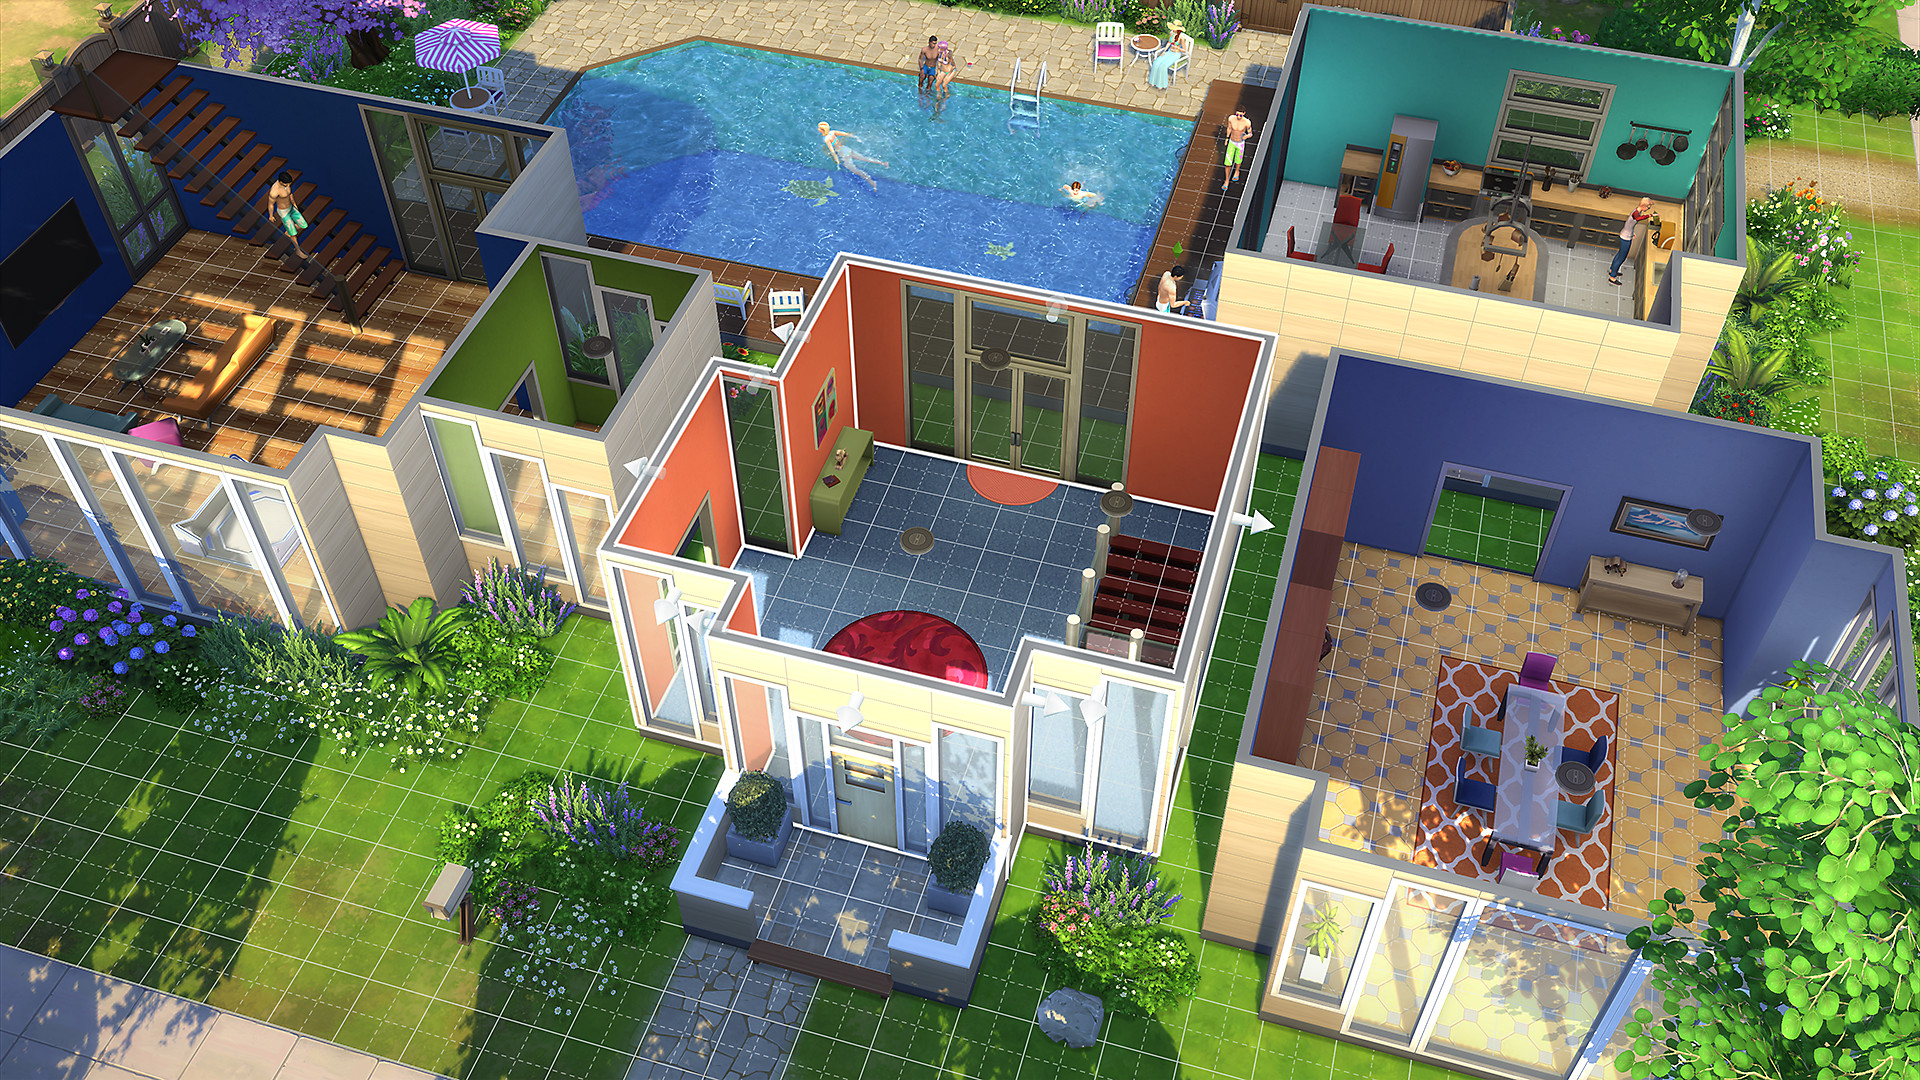 Sims 4 - Build beautiful homes